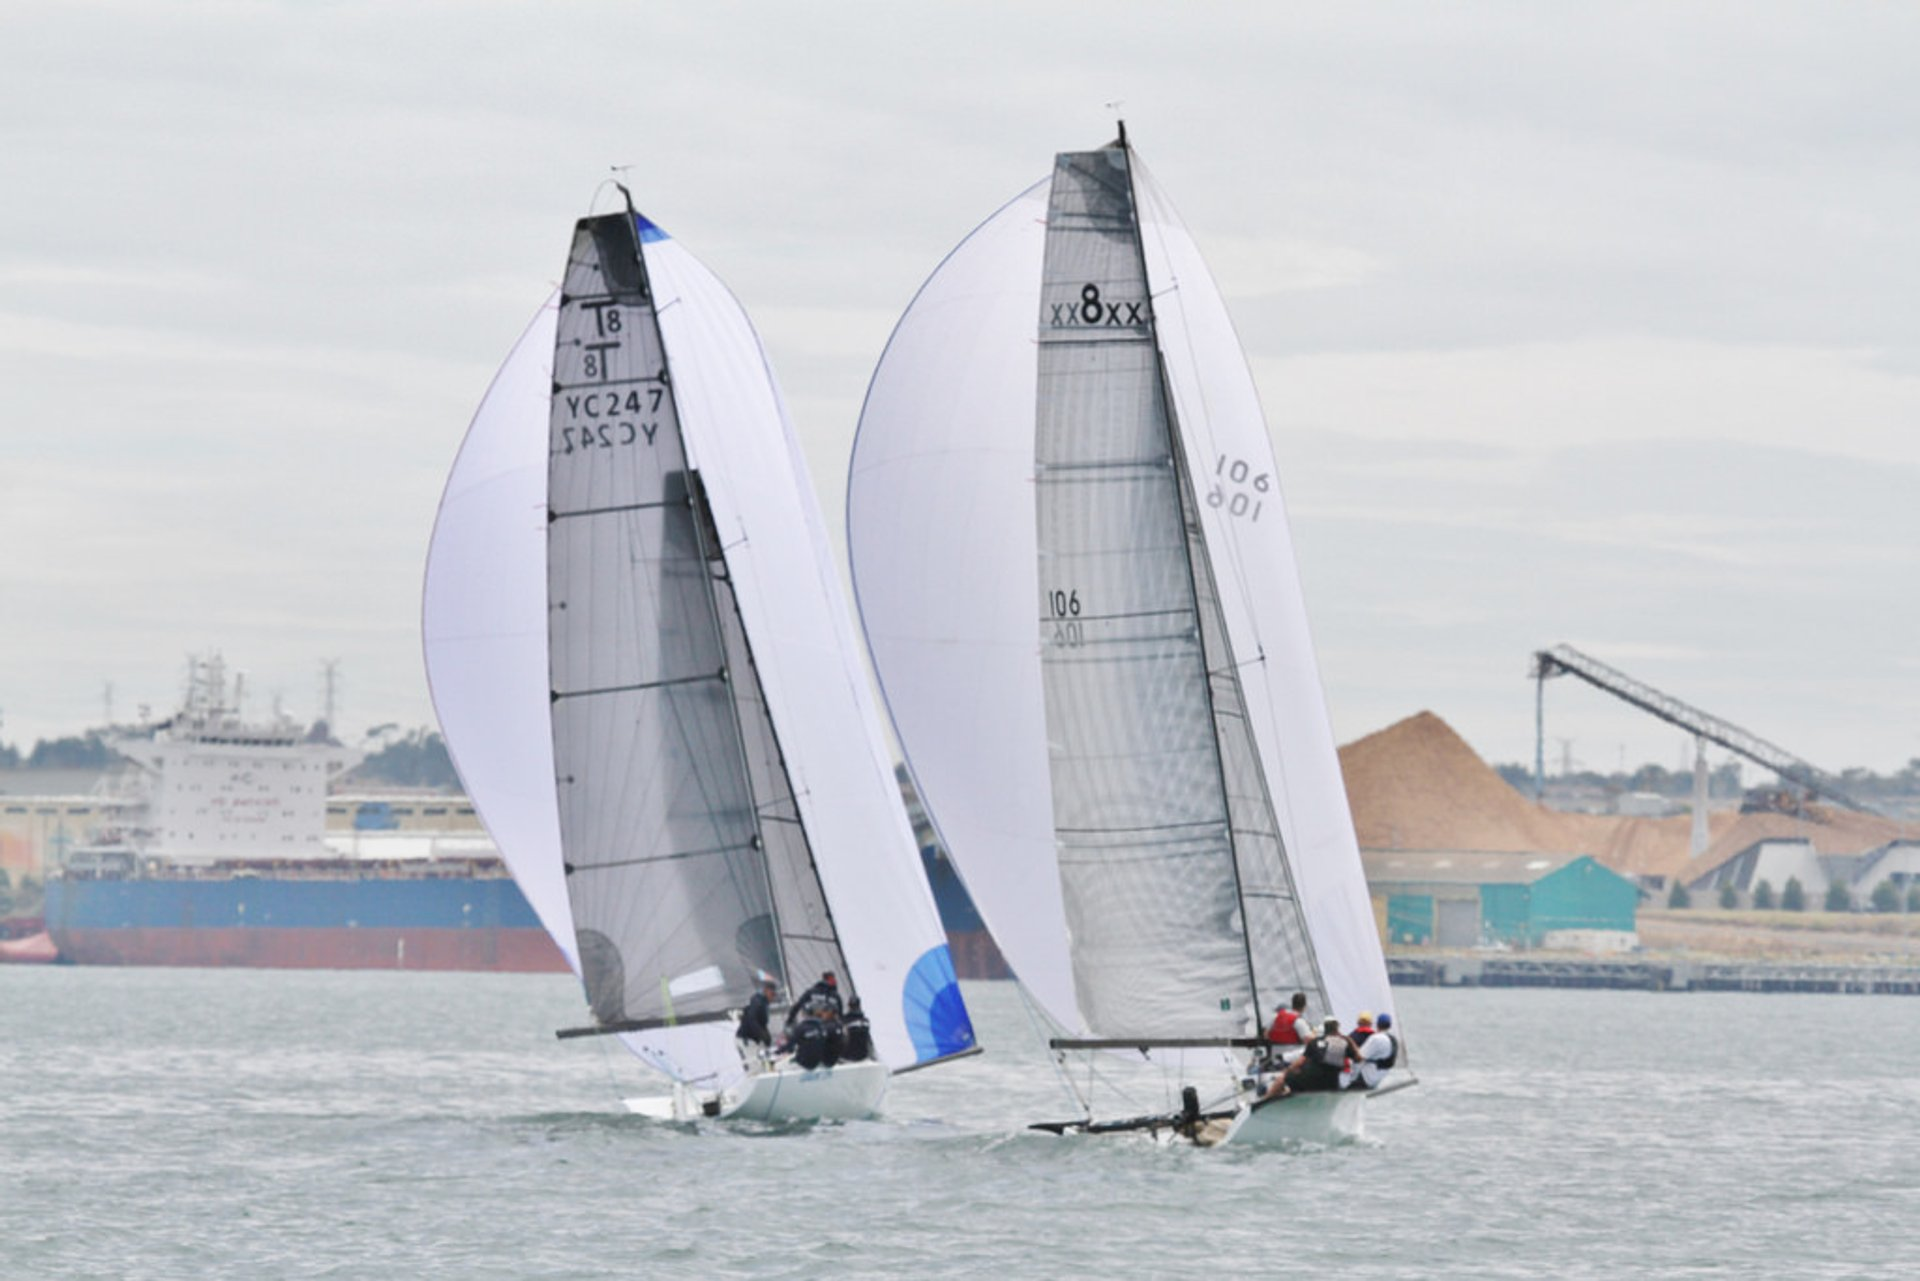 Best time for Festival of Sails in Victoria 2020